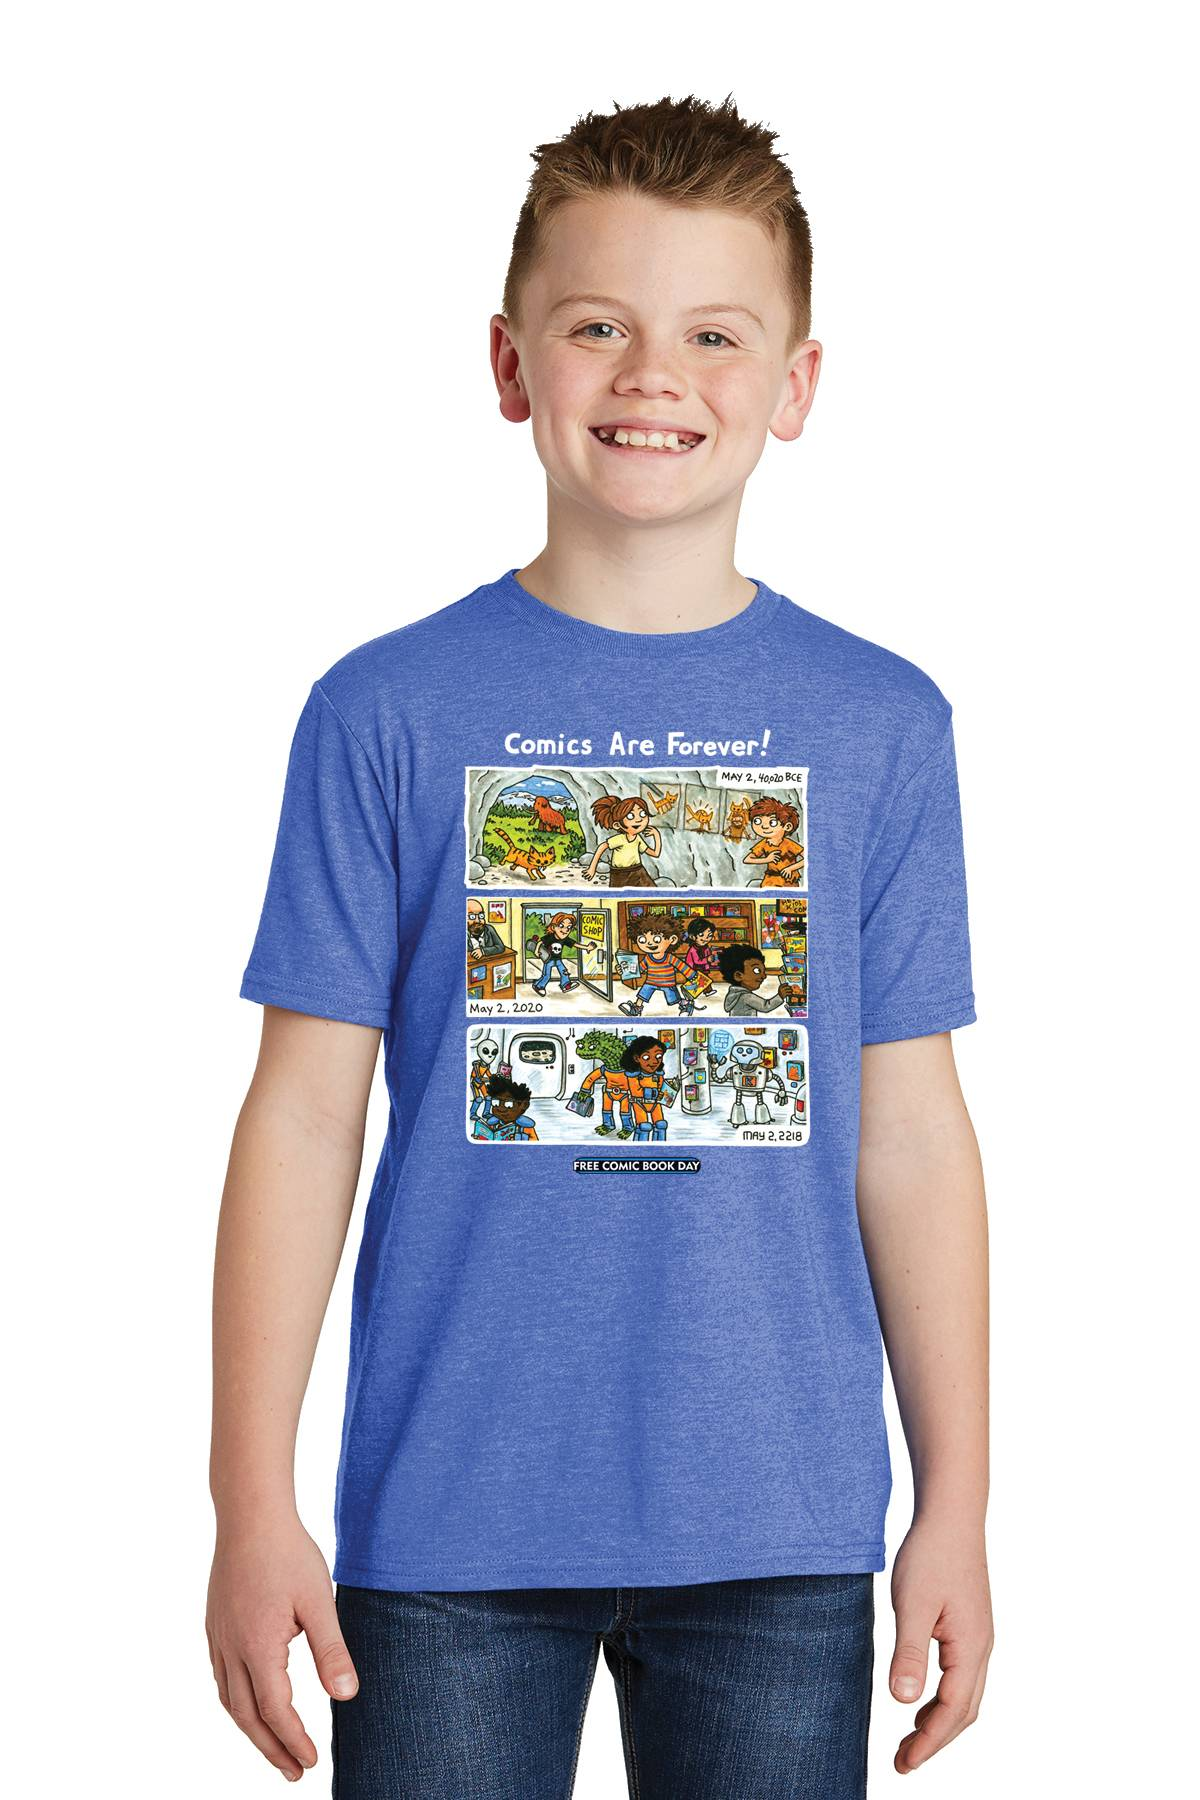 FCBD 2020 COMM ARTIST BROWN BLUE YOUTH T/S MED